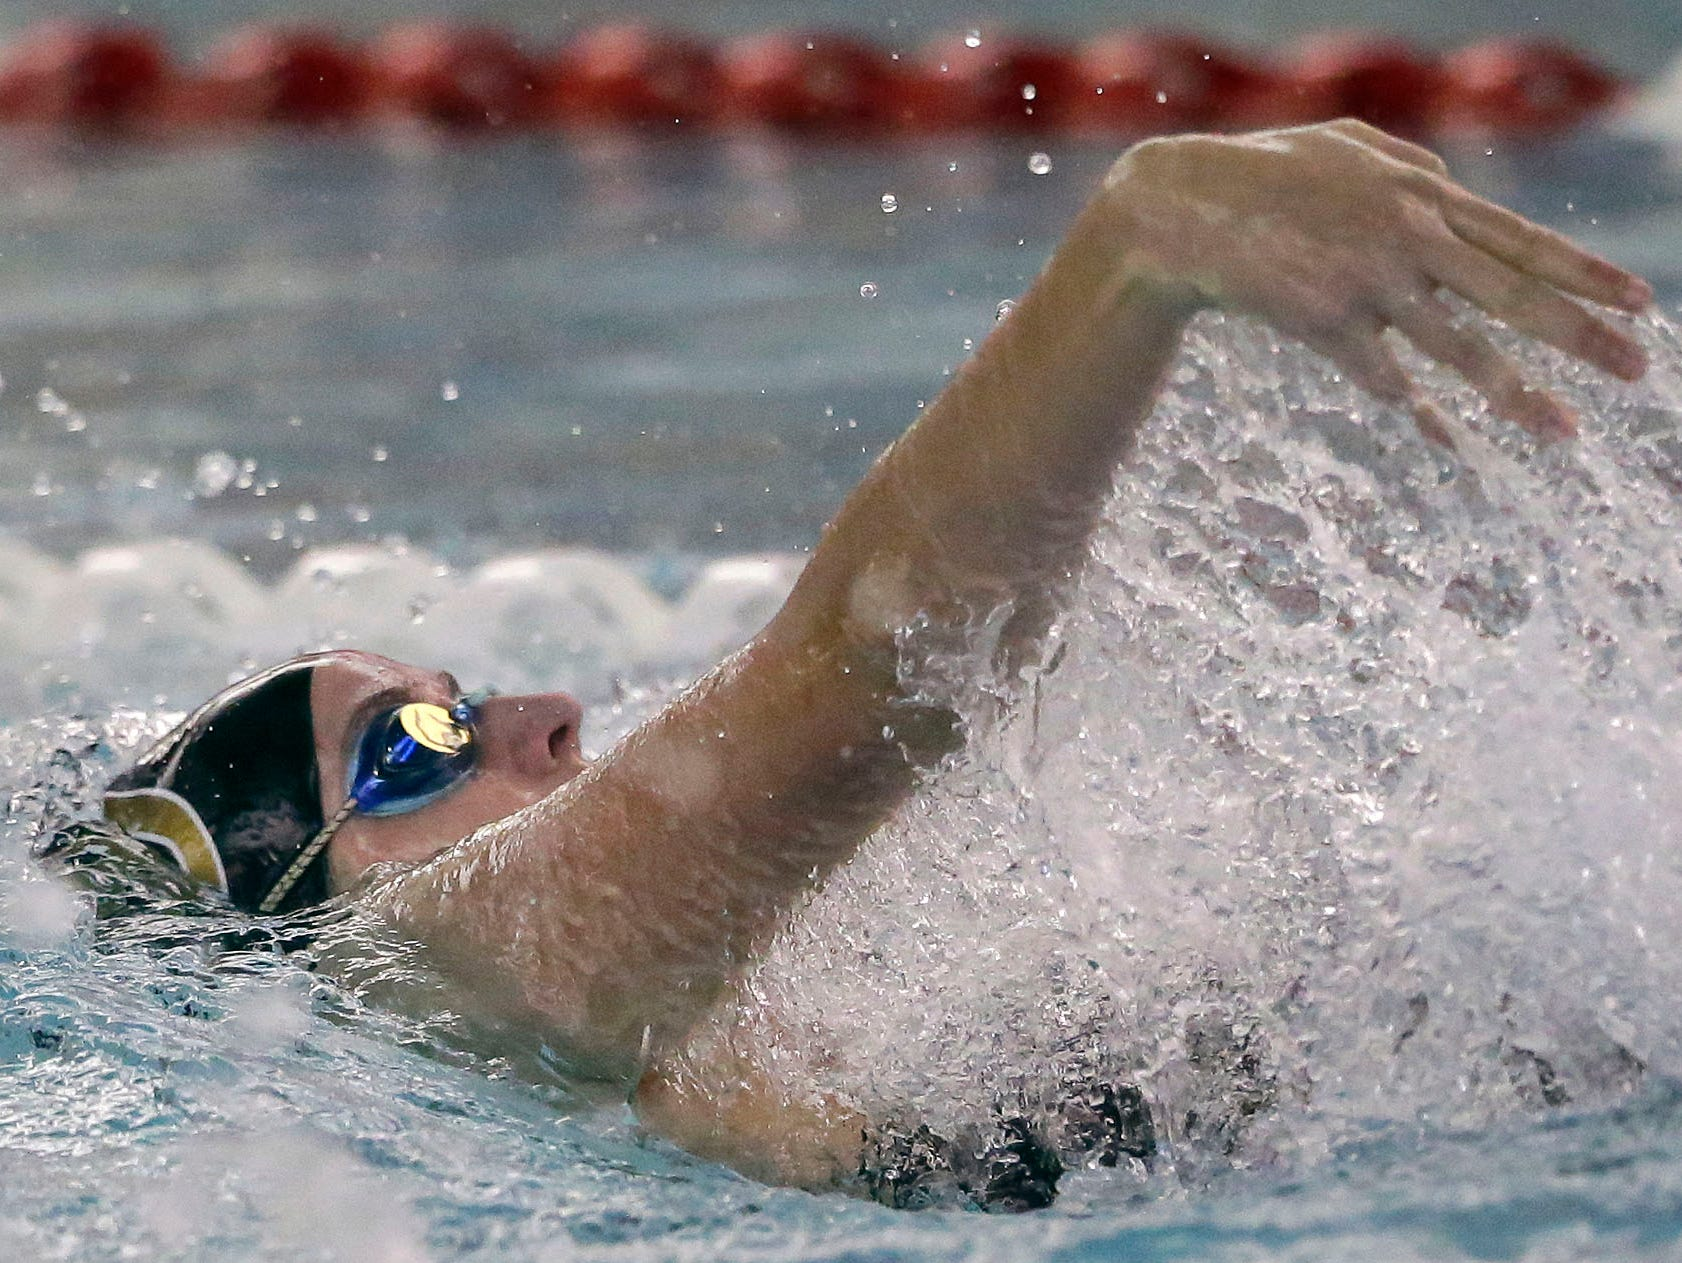 Brigitta Neverman of Green Bay SW swims the 100 Yard Backstroke as the WIAA Division 1 swimming sectional meet takes place Saturday, November 3, 2018, at Neenah High School in Neenah, Wis. Winners advanced to state.Ron Page/USA TODAY NETWORK-Wisconsin